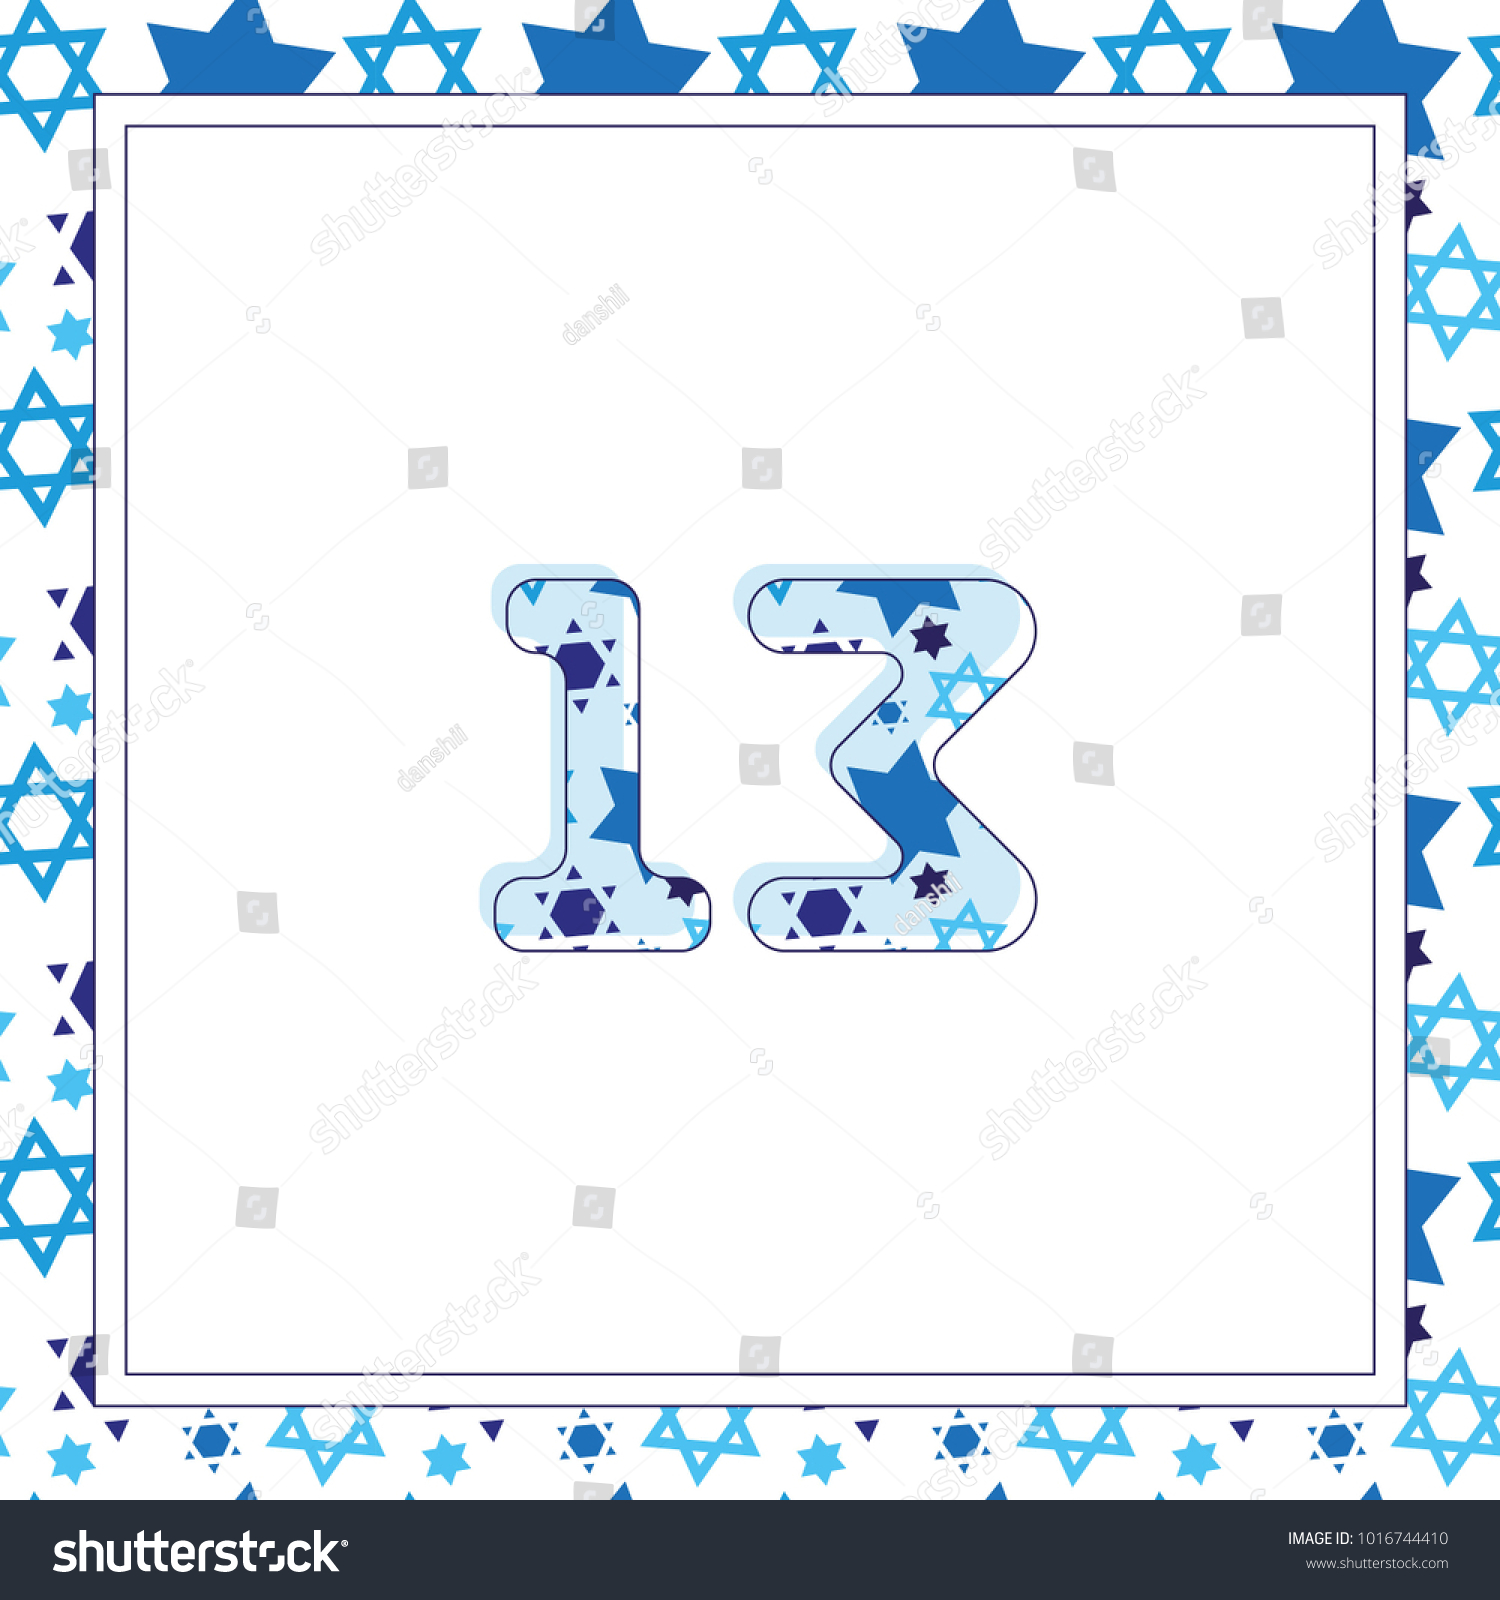 Jewish bar mitzvah invitation card template stock vector jewish bar mitzvah invitation card template 13 thirteen birthday star of david seamless pattern background biocorpaavc Gallery